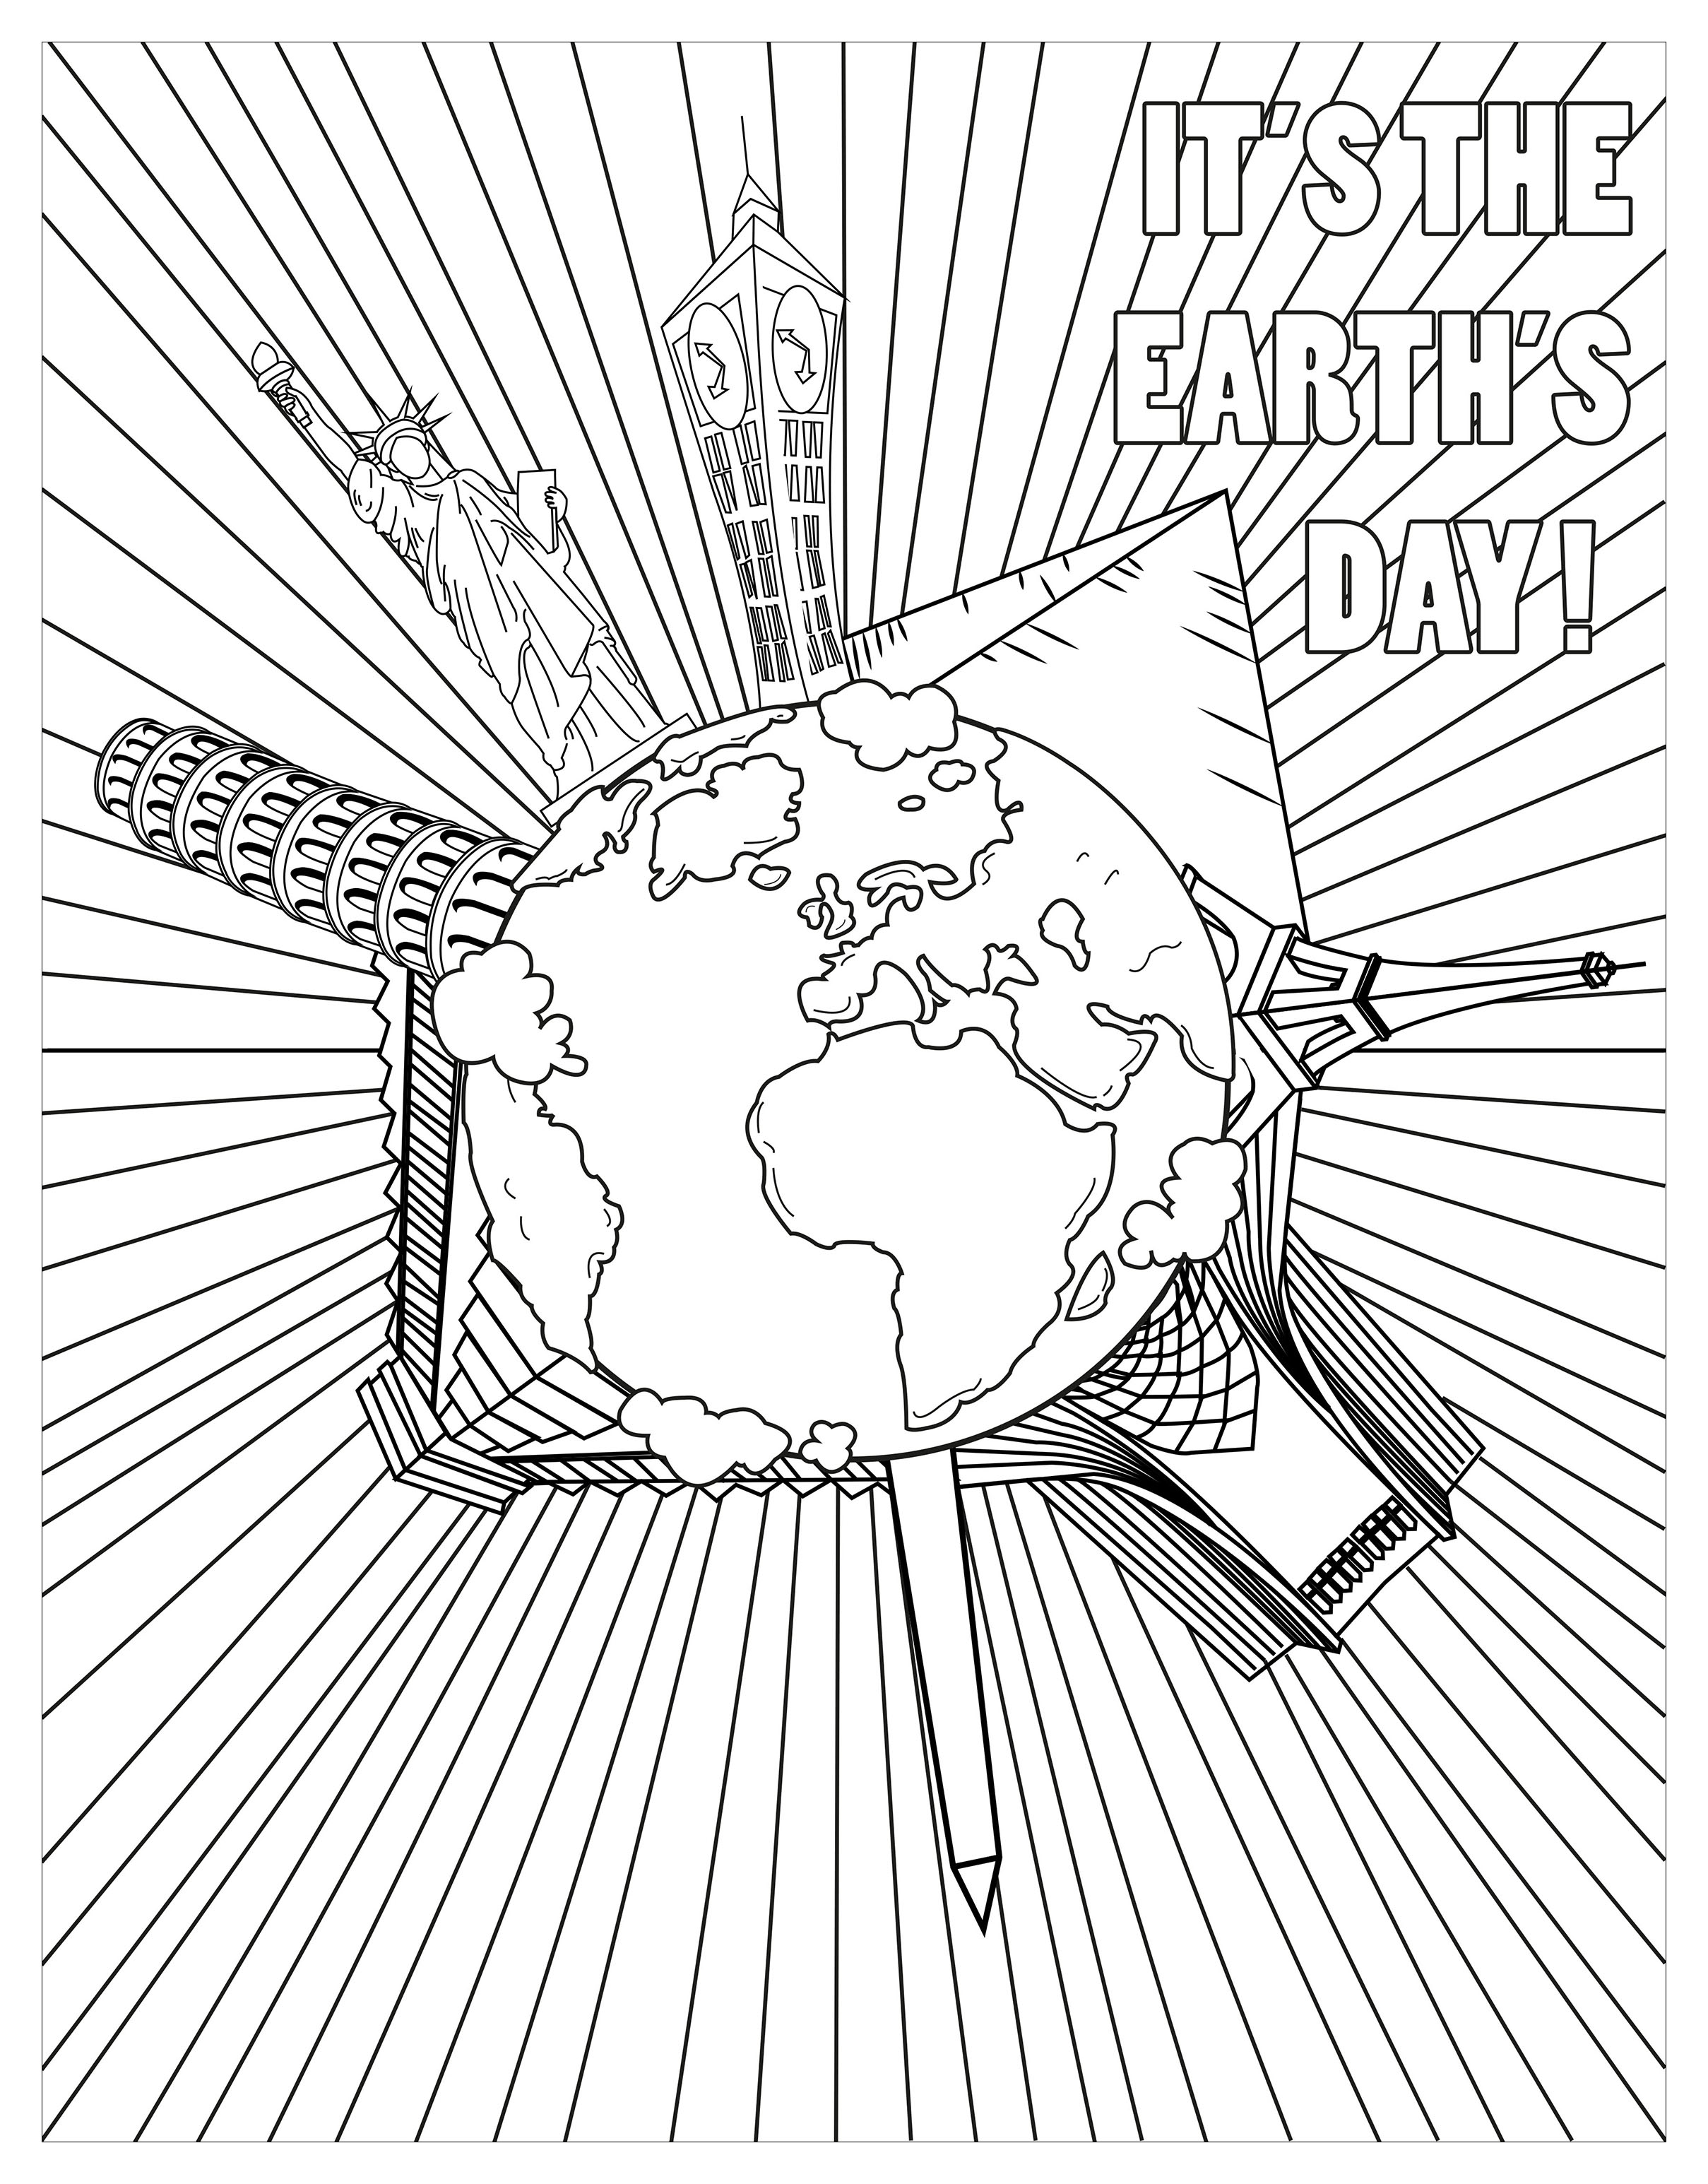 Coloring page for the Earth's Day